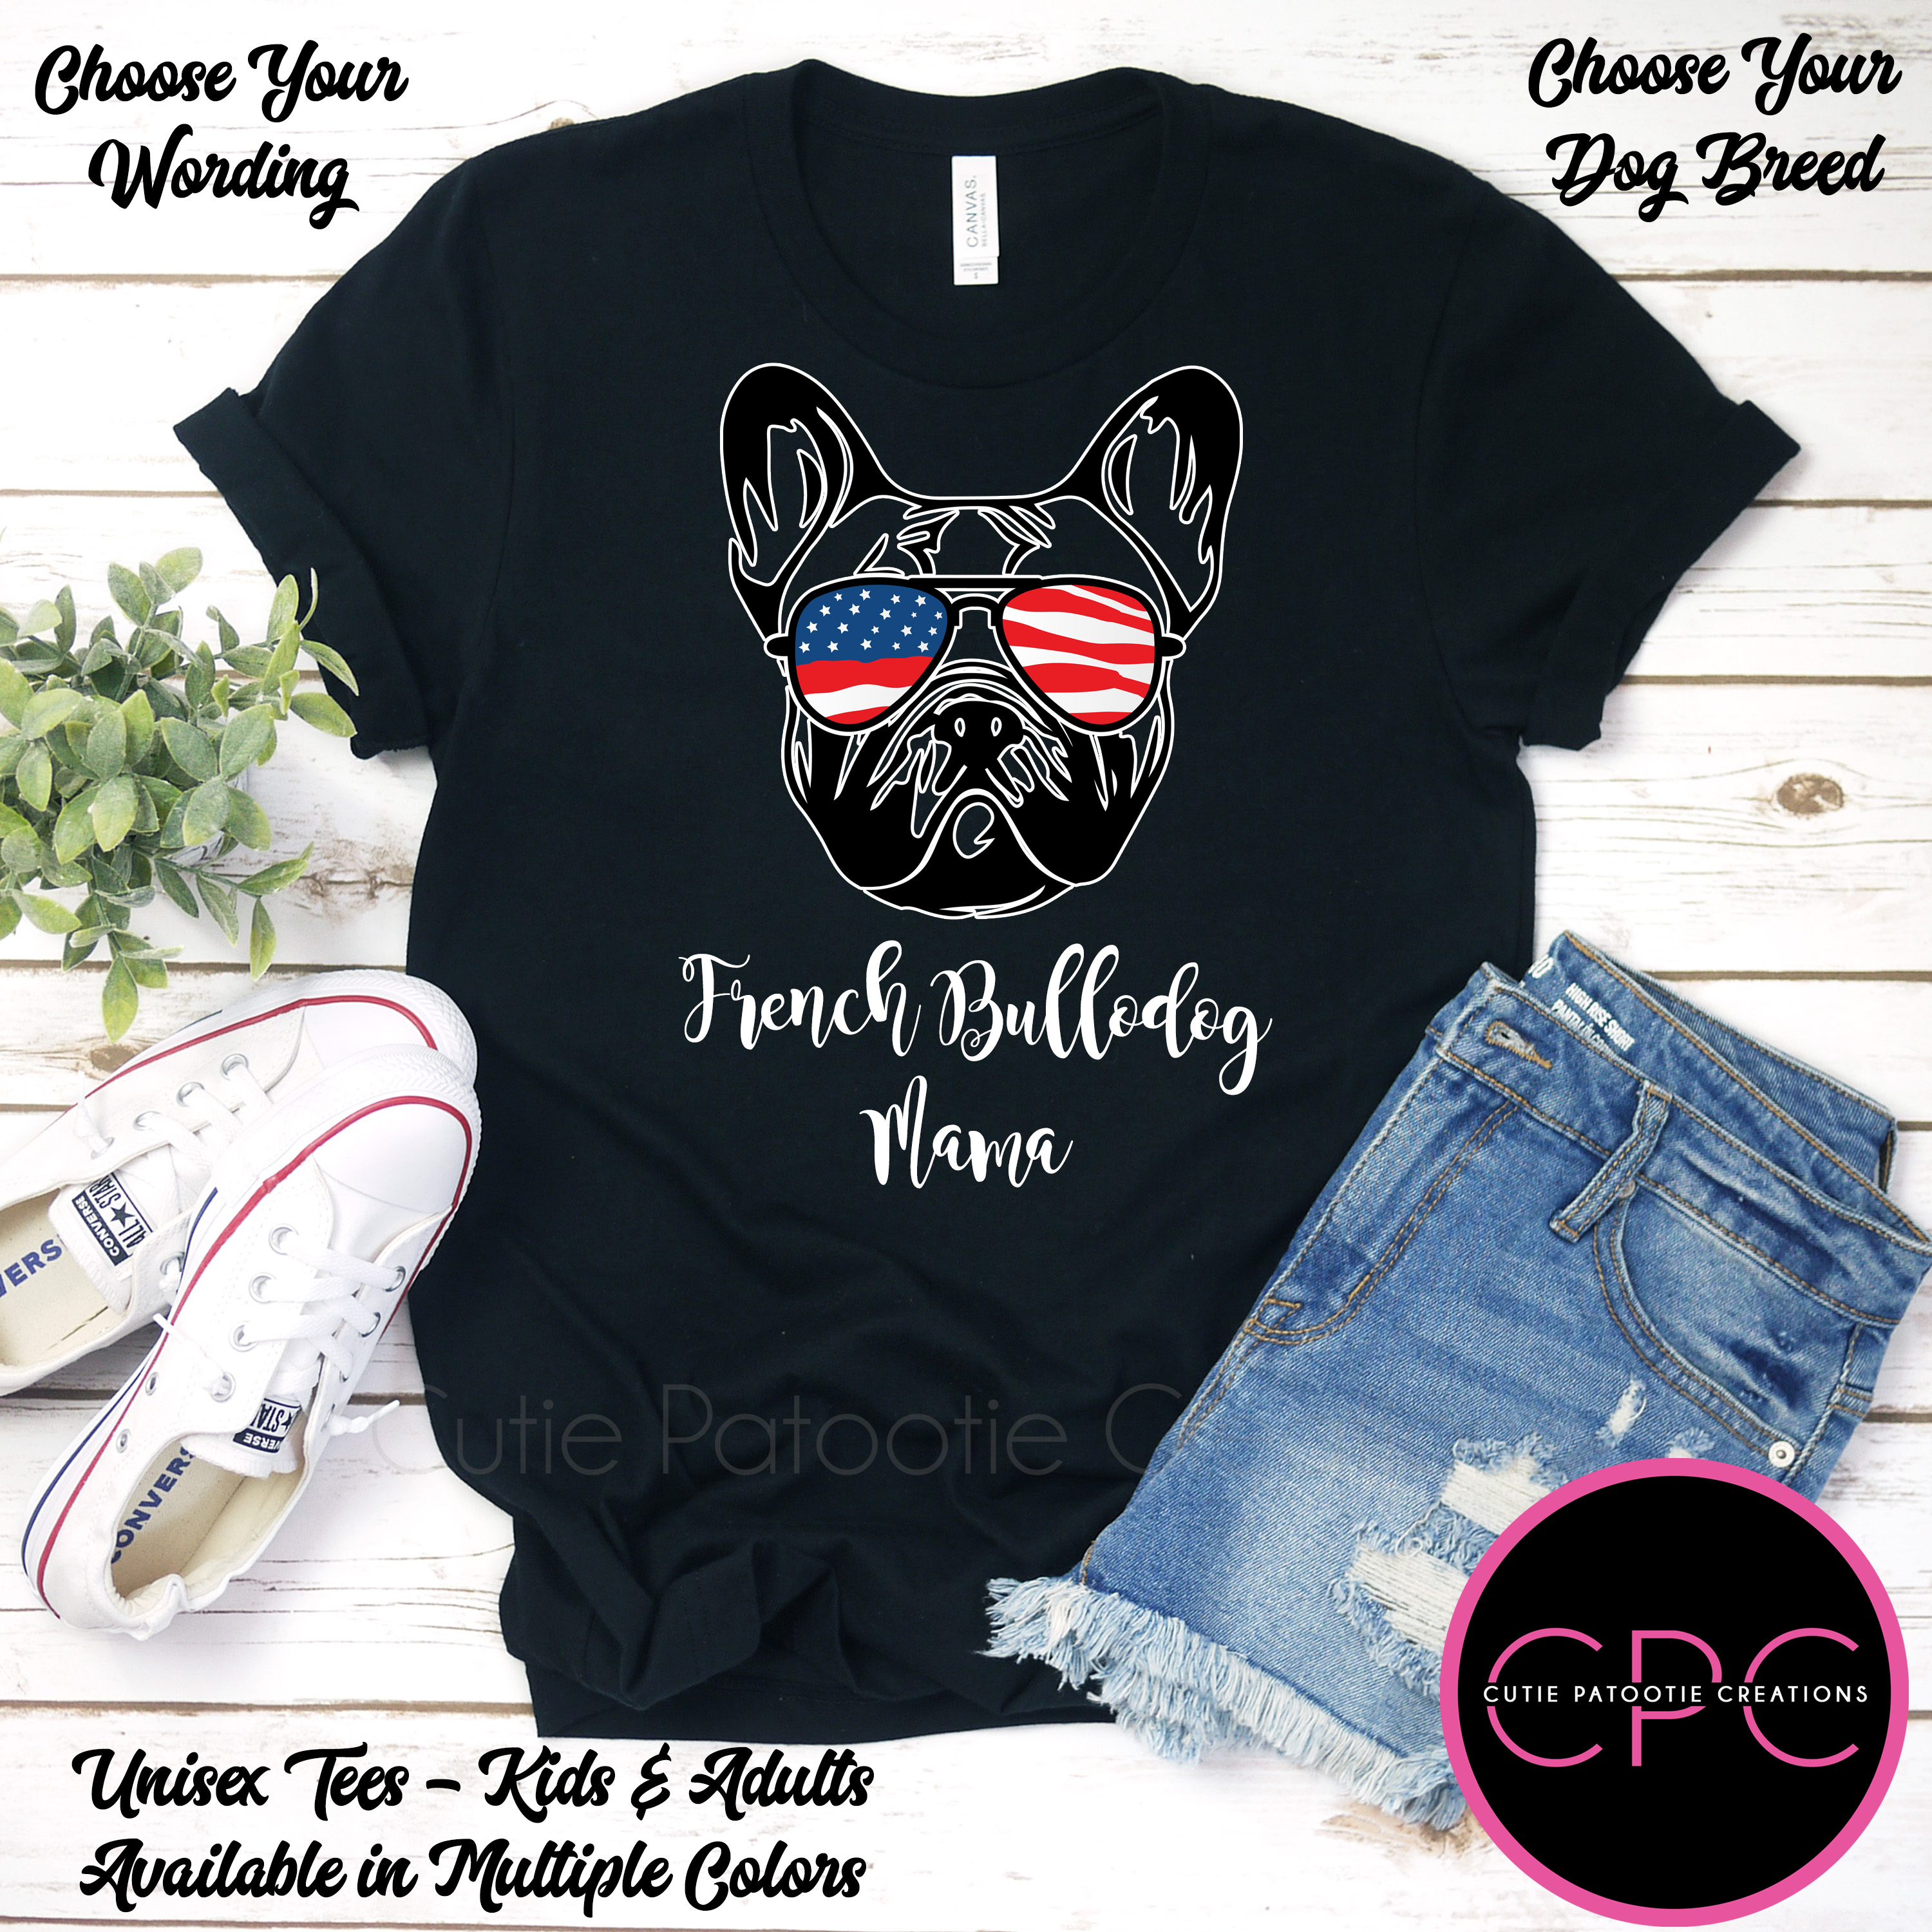 Personalized French Bulldog Mom T Shirt   Lucky Dog Swag